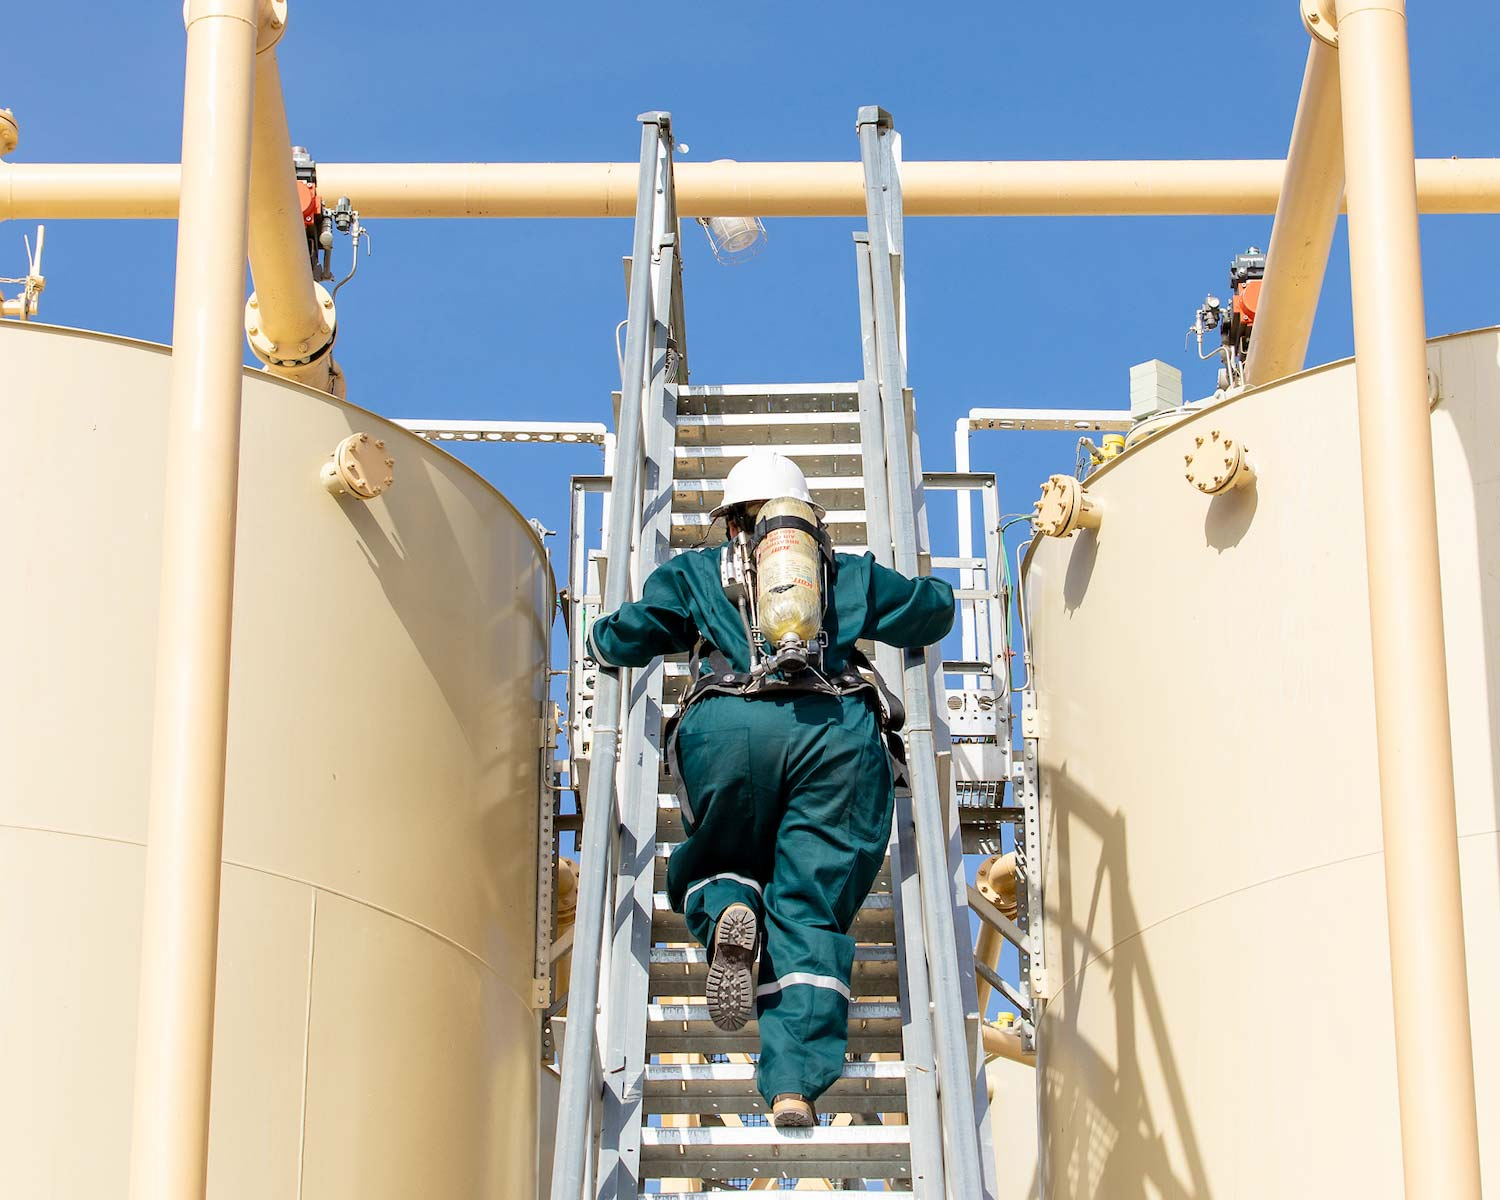 A worker protected by shepherd safety systems gas detection technology works at an industrial site